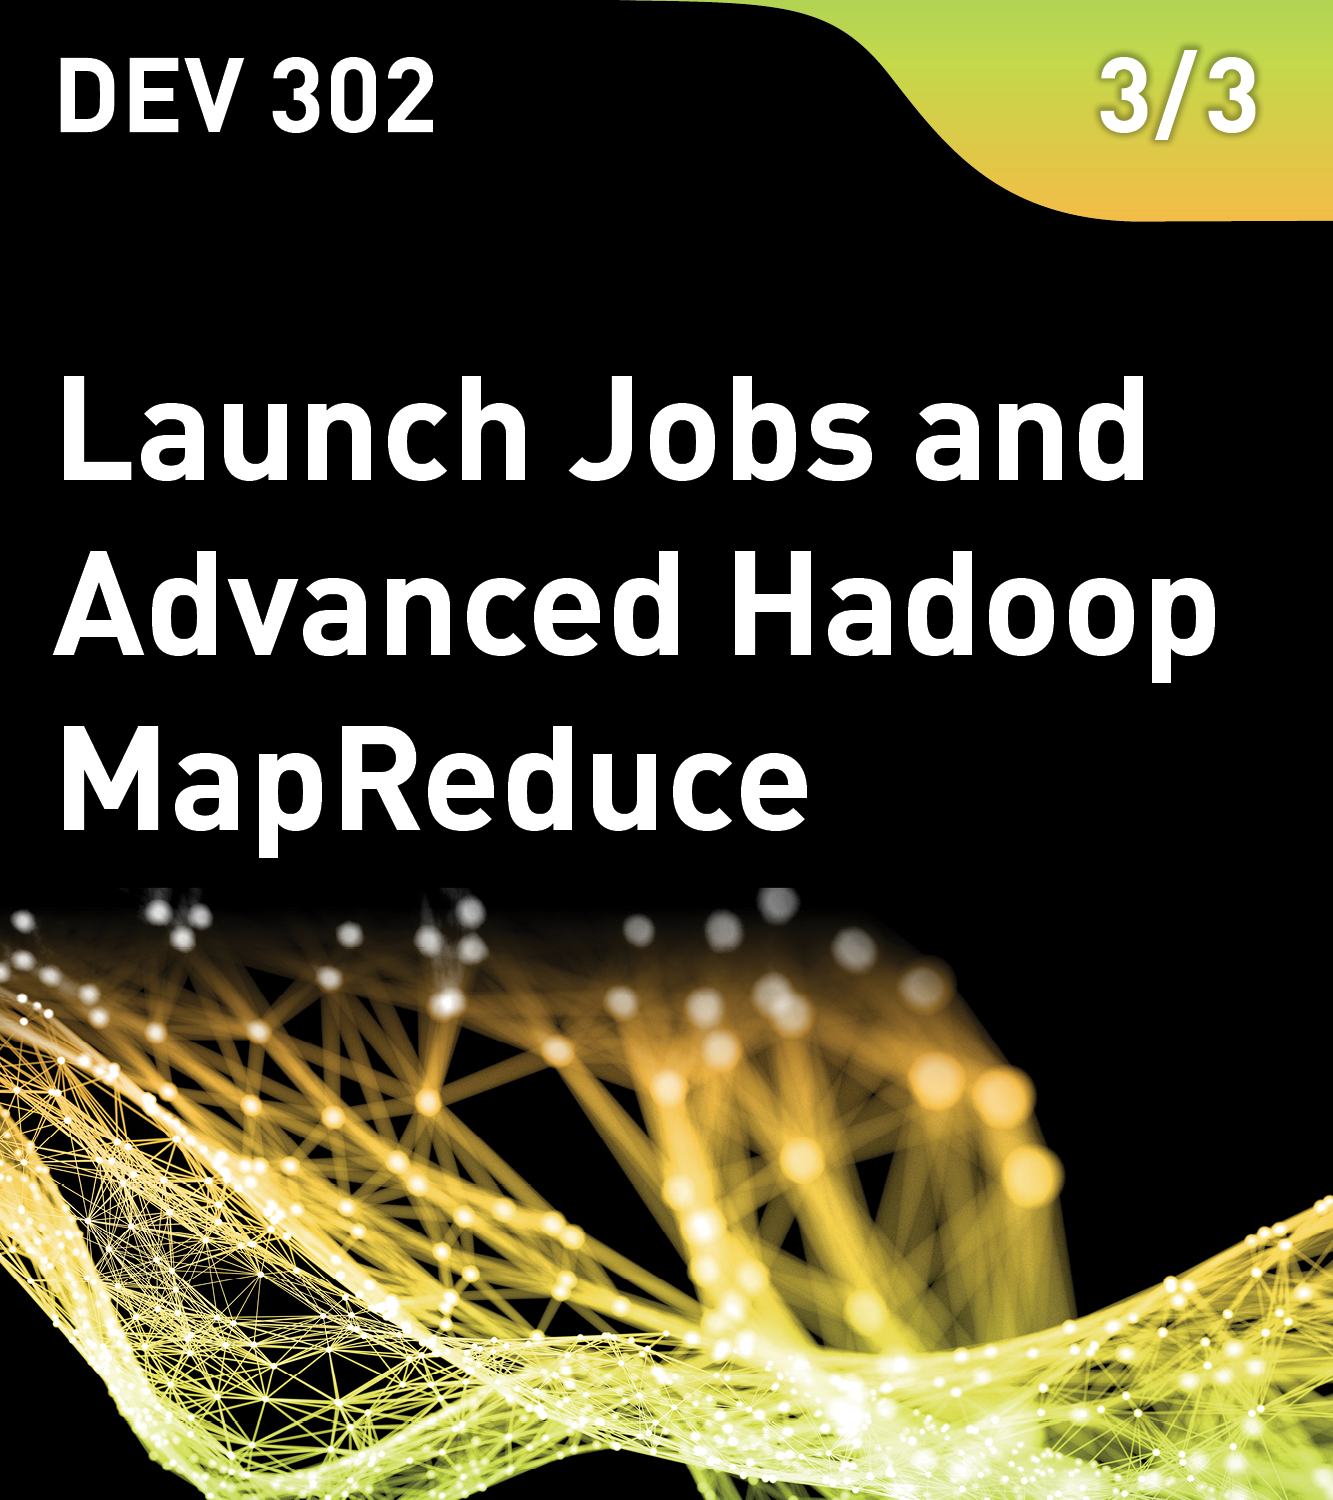 DEV 302 - Launch Jobs and Advanced Hadoop MapReduce